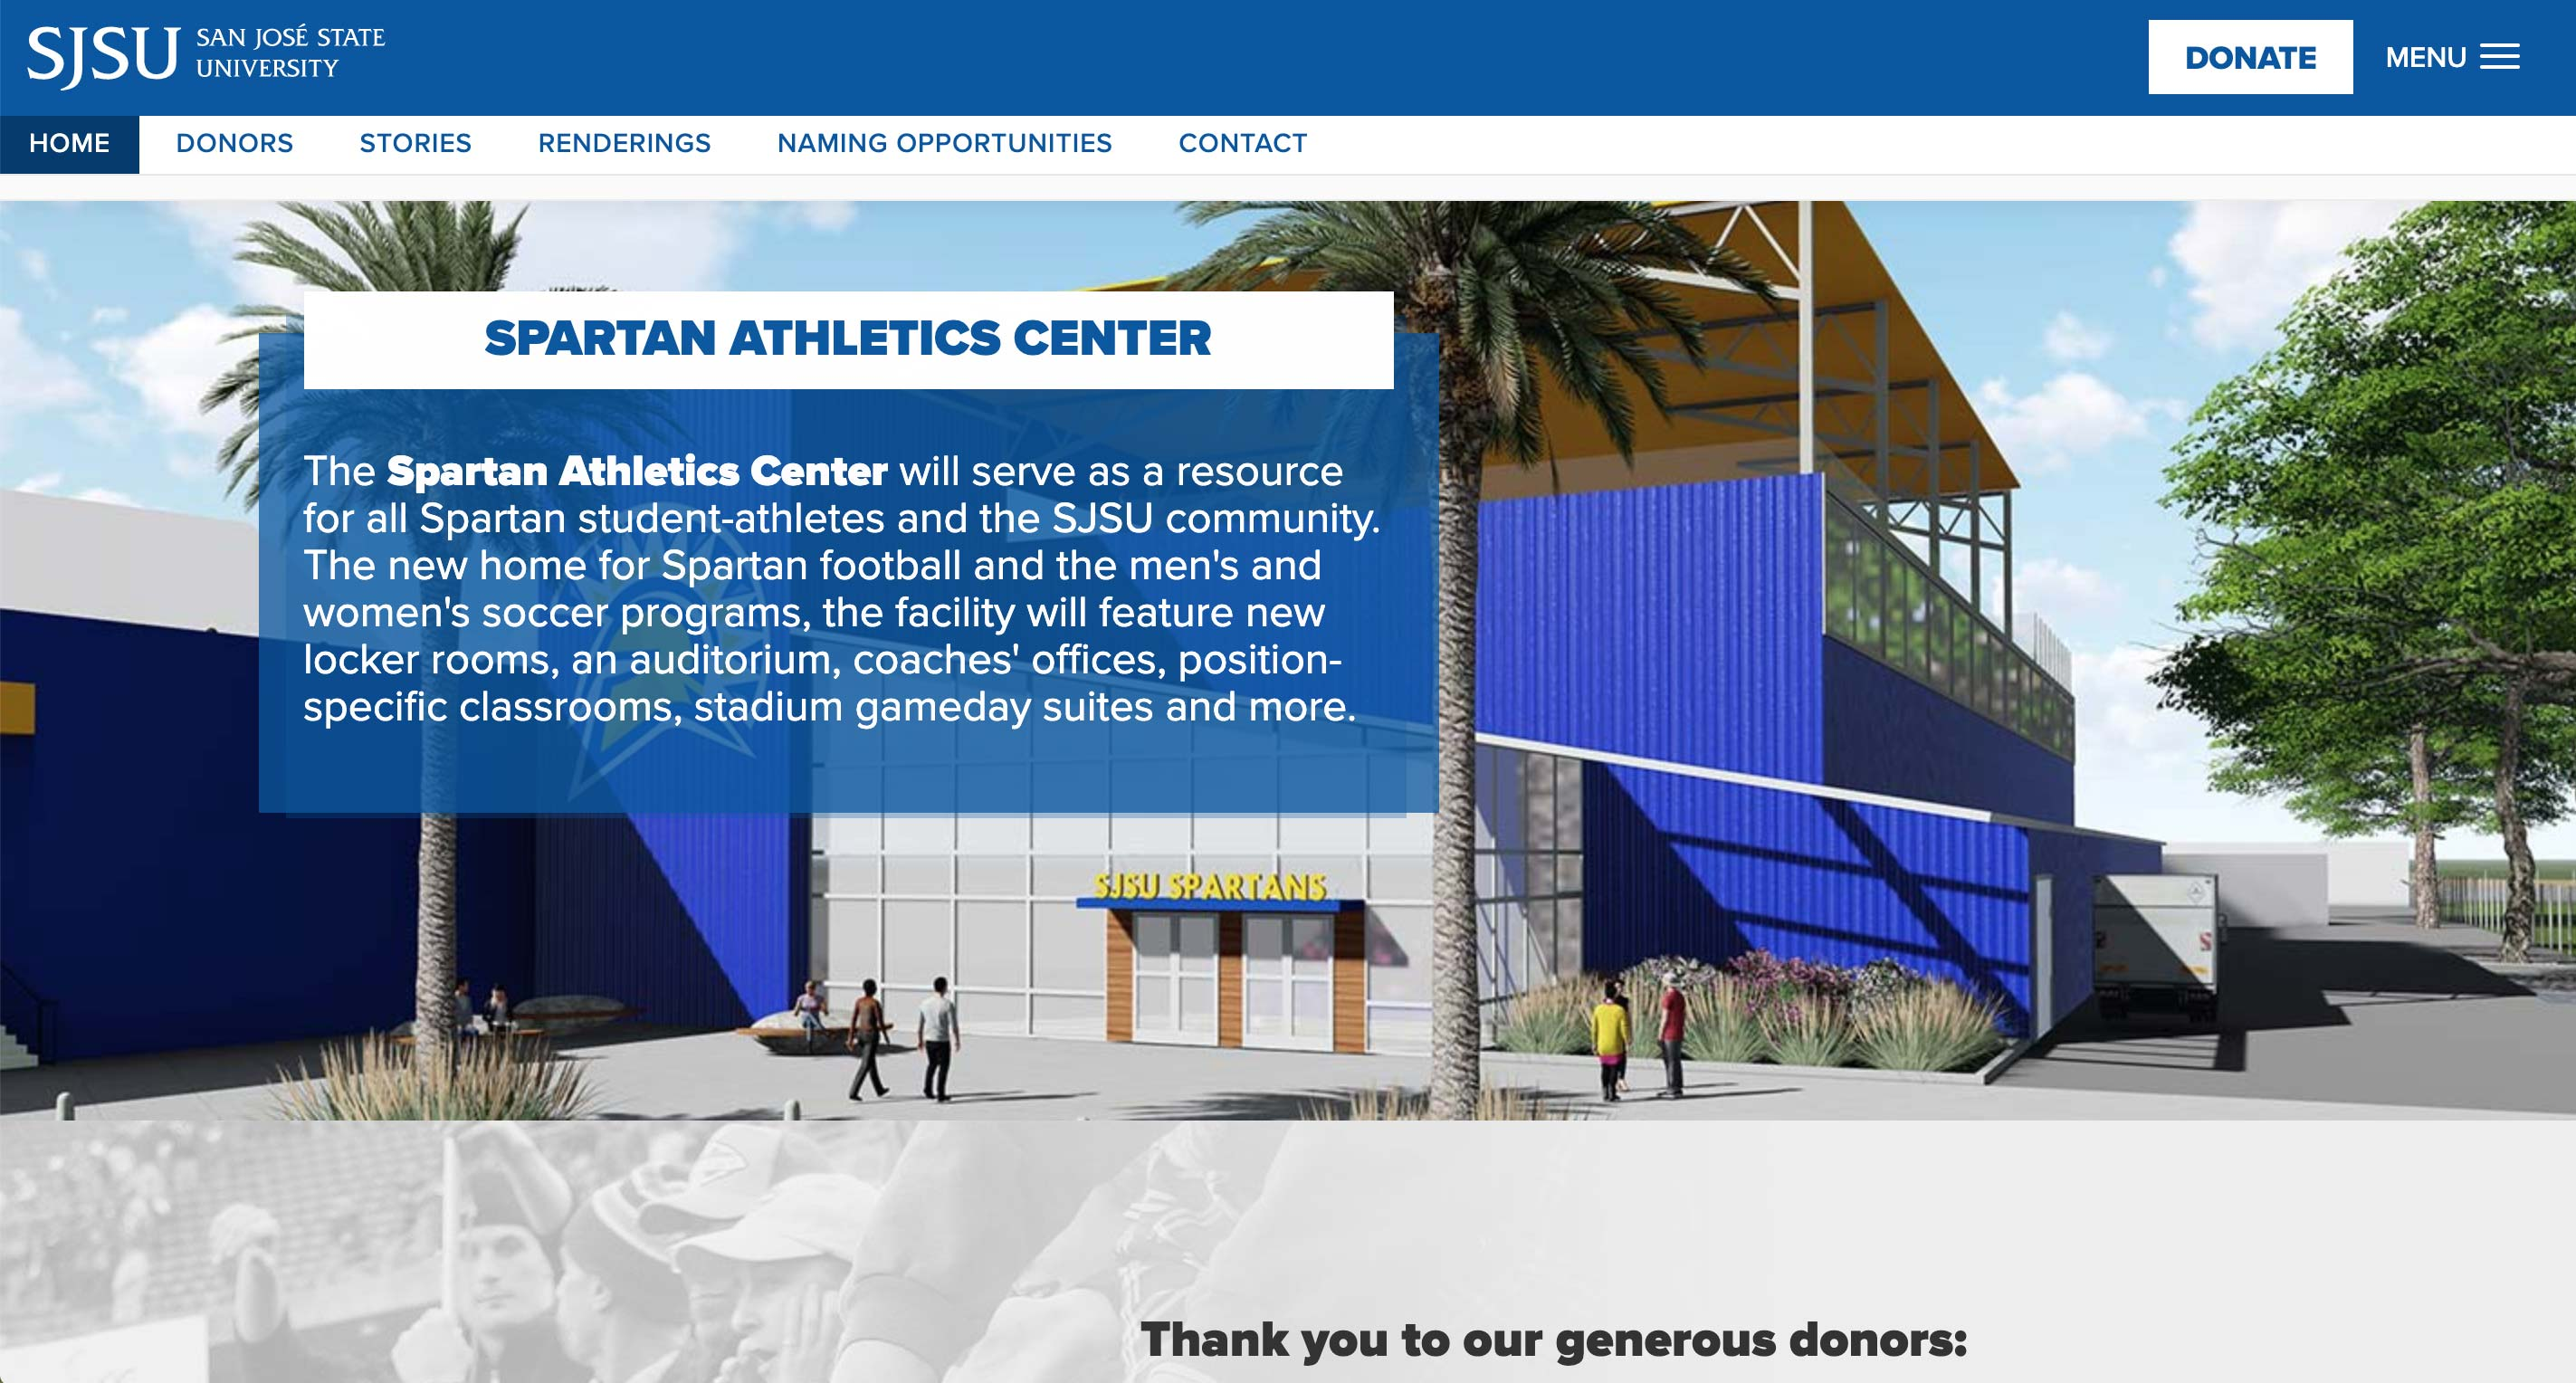 All In Campaign for Spartan Football Website  | <a href='http://sjsufootball.com/' target='_blank'>Visit Site <i class='nc-icon-glyph arrows-1_share-91'></i></a><br><span>San Jose State University</span>